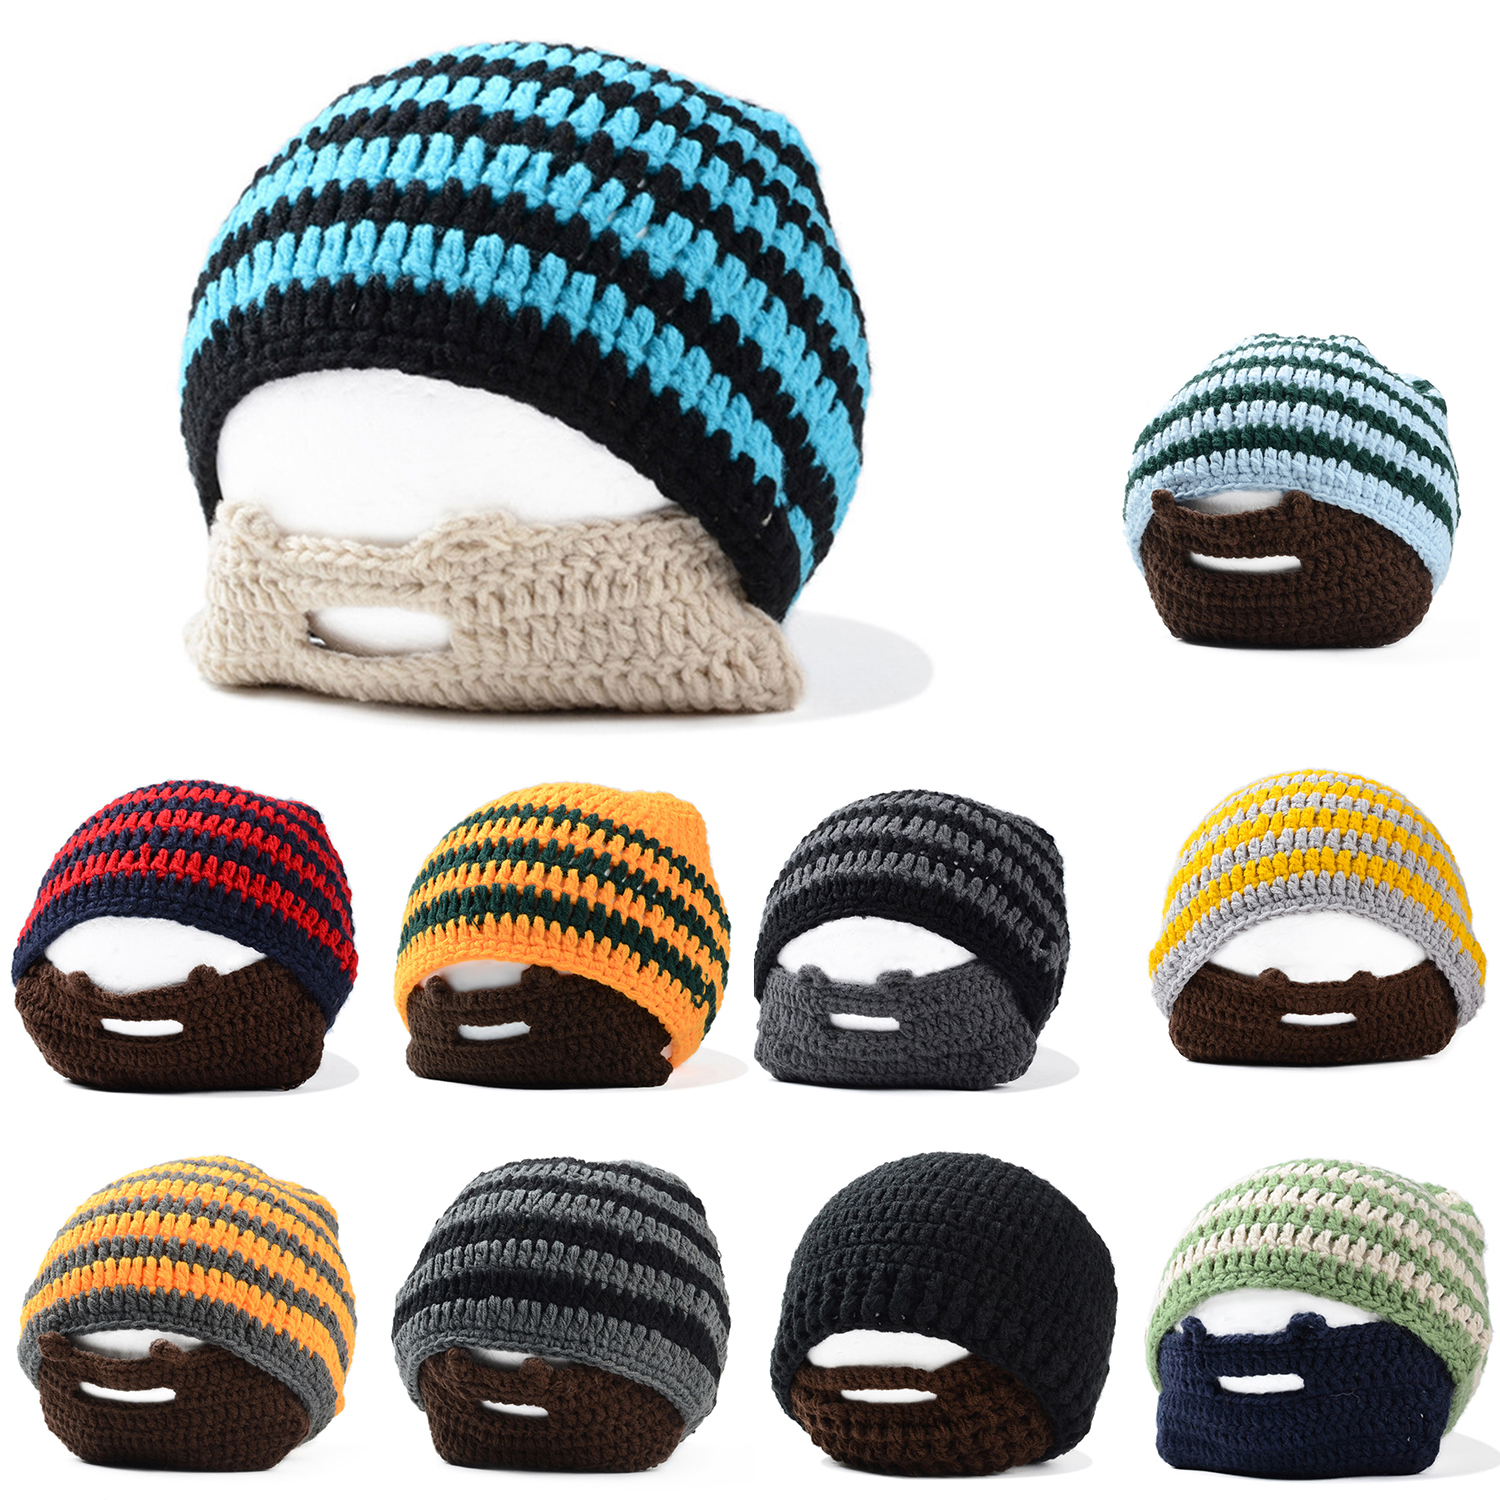 607f12c0825 Details about New Knitted Crochet Beard Hat Striped Bicycle Mask Ski Cap  roman knight octopus